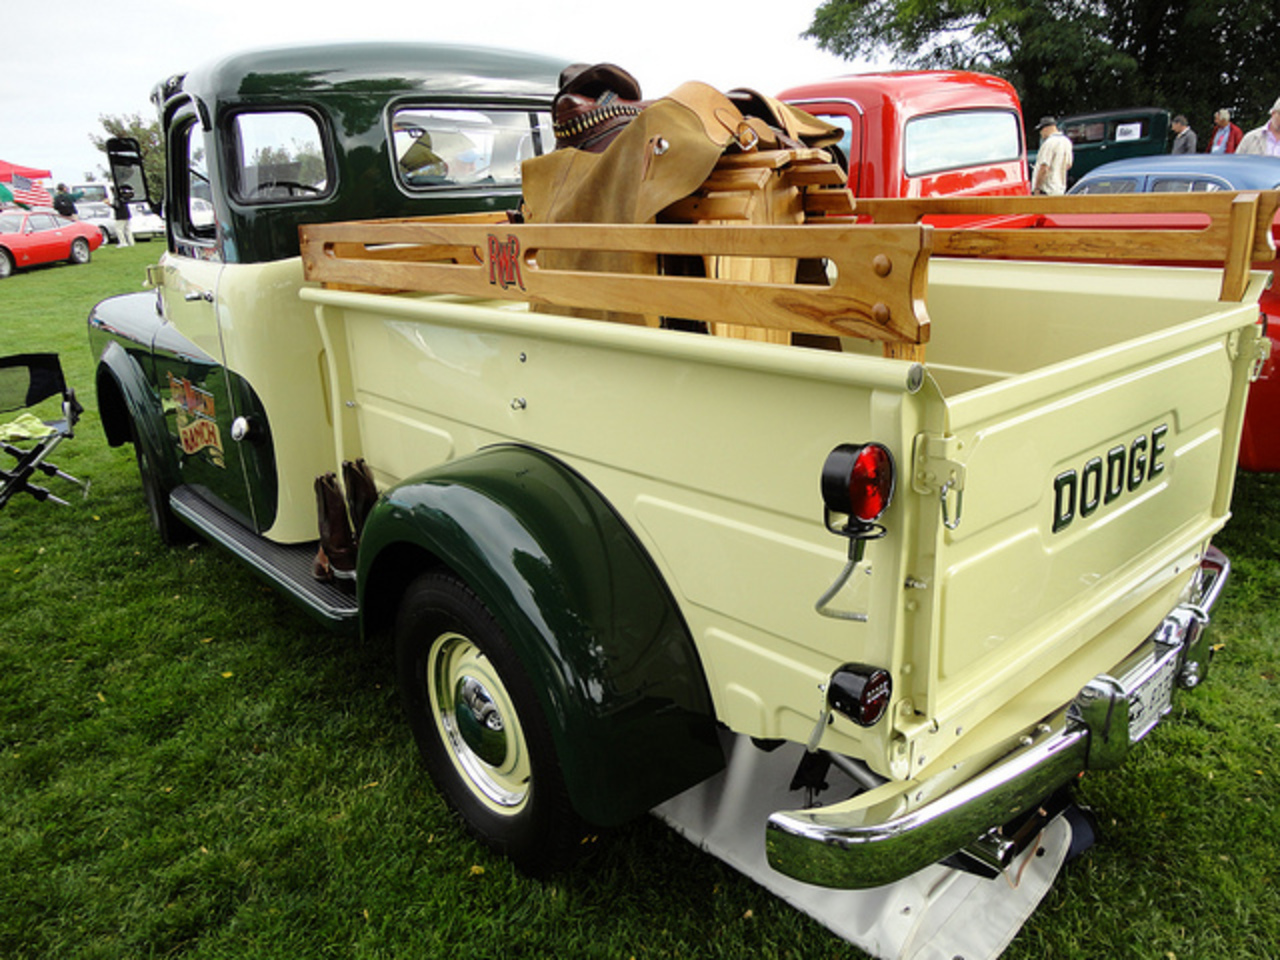 1950 Dodge Half-Ton Pickup Truck | Flickr - Photo Sharing!